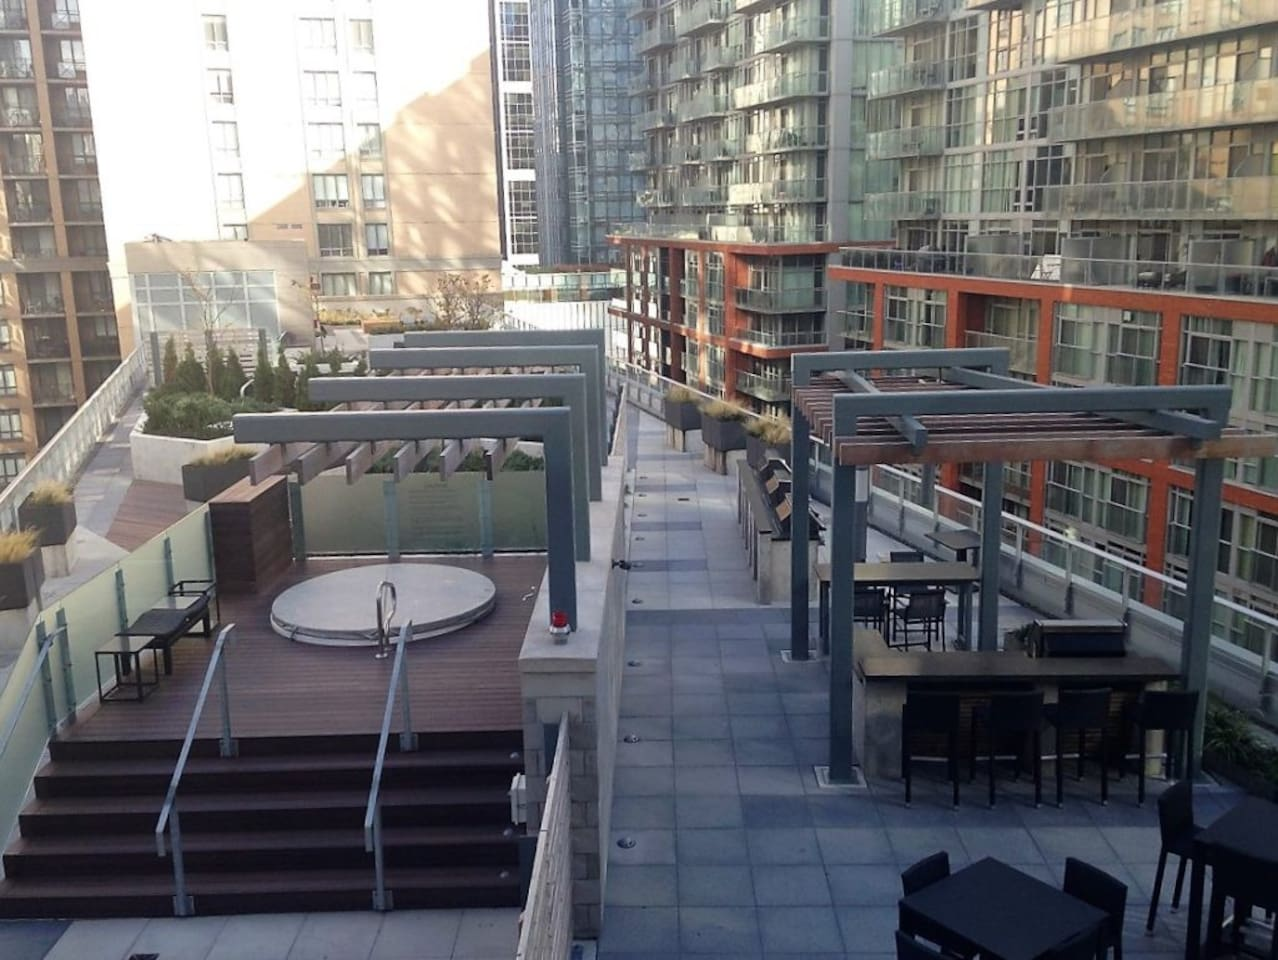 Patio Rooftop with Hot Tub and BBQ grills